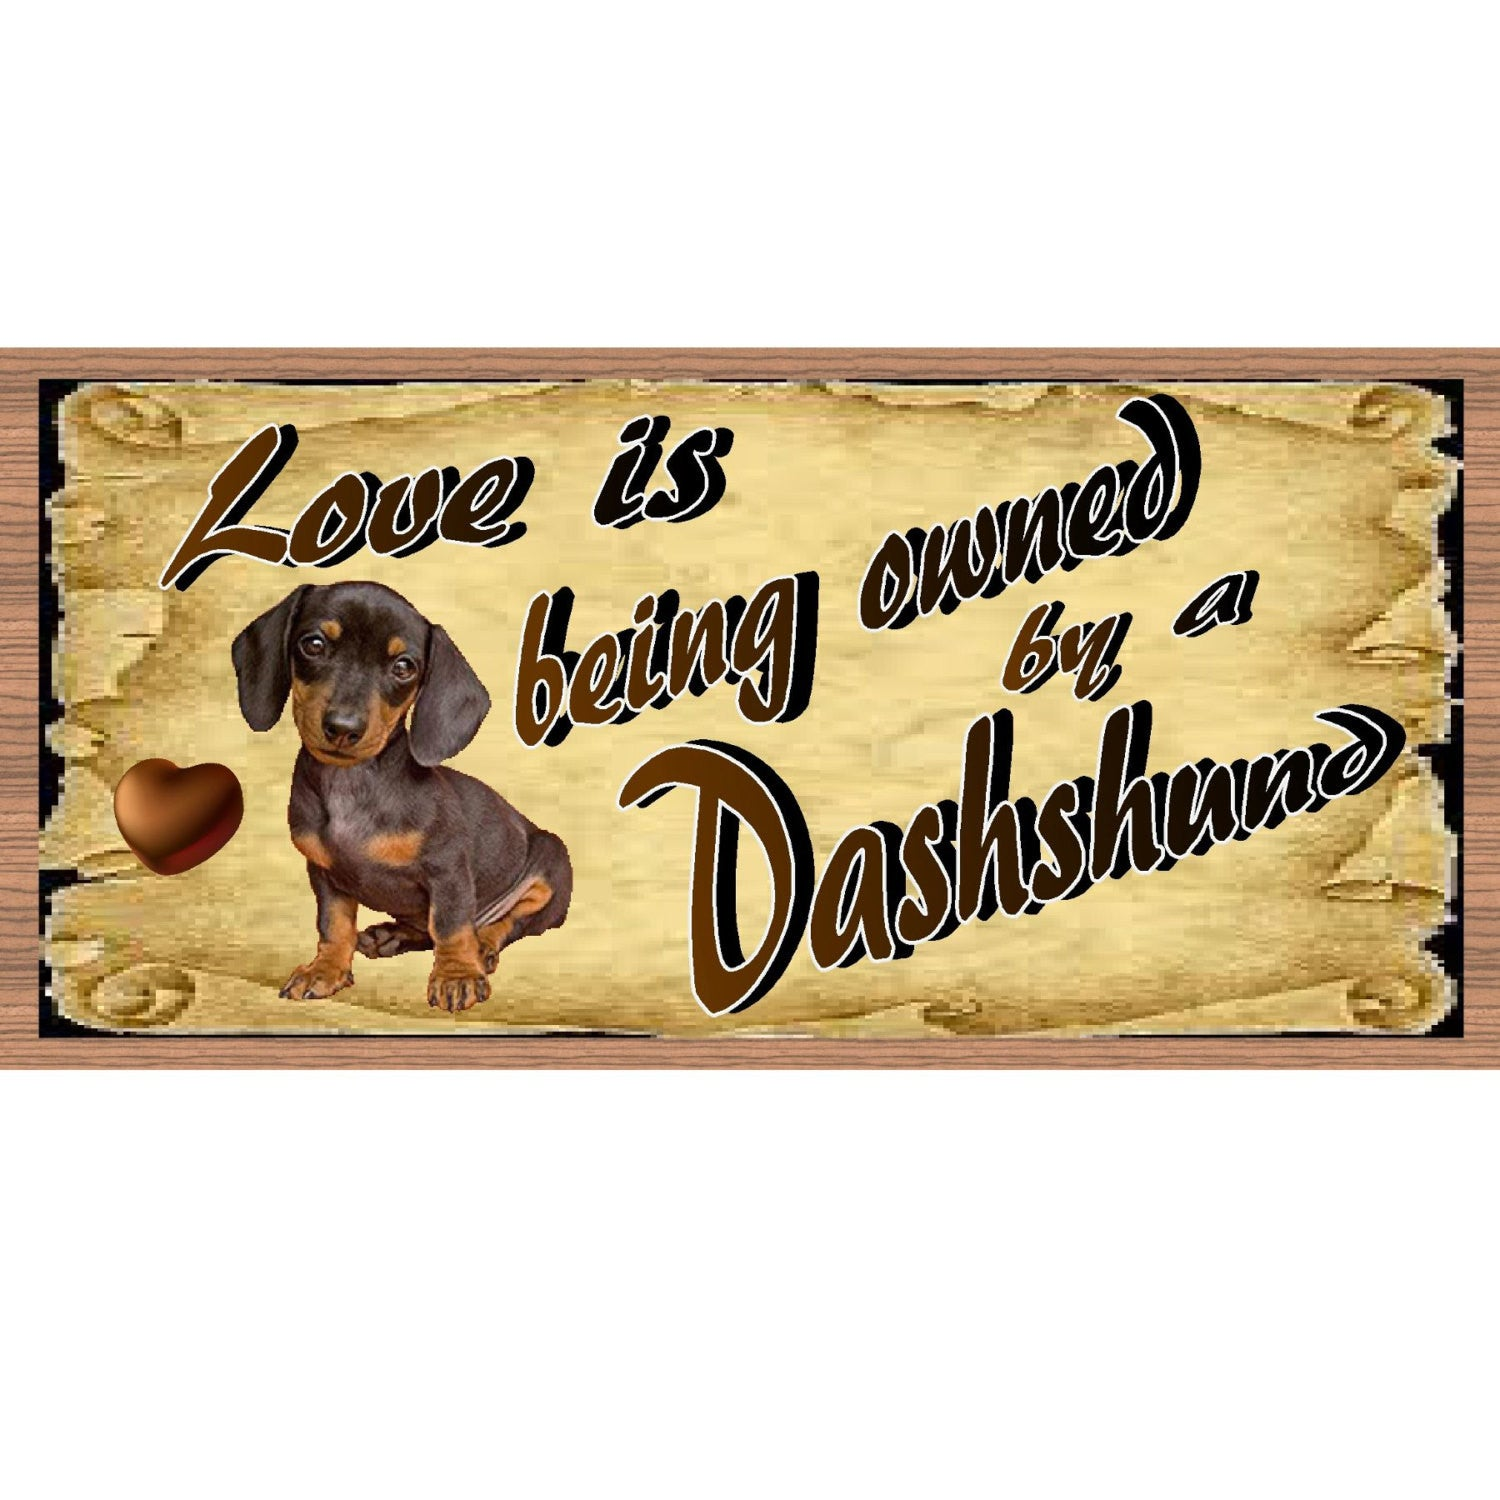 Dachshund Wood Signs - Love is Being Owned by a Dachshund - GS 1781 - Dog Signs